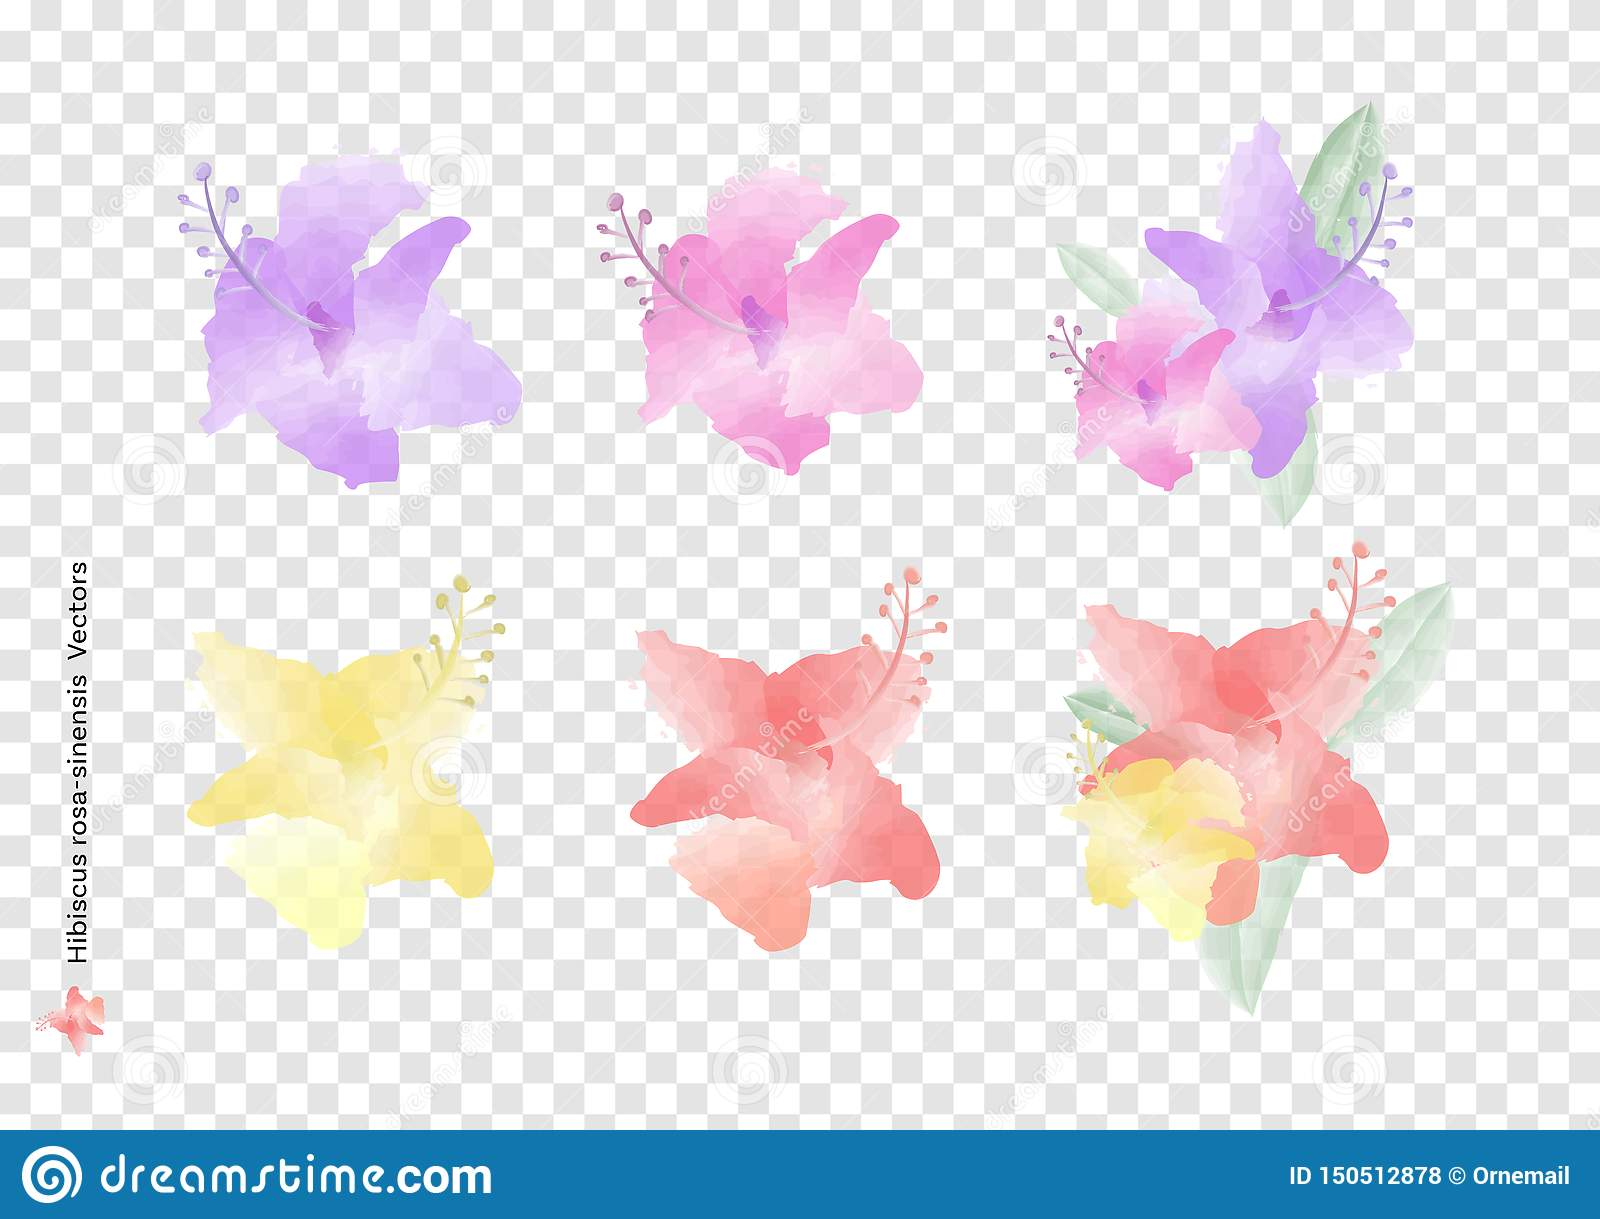 Hibiscus rosa sinensis flowers vectors and leaves with watercolor brush isolated on transparency background, beautiful floral elem